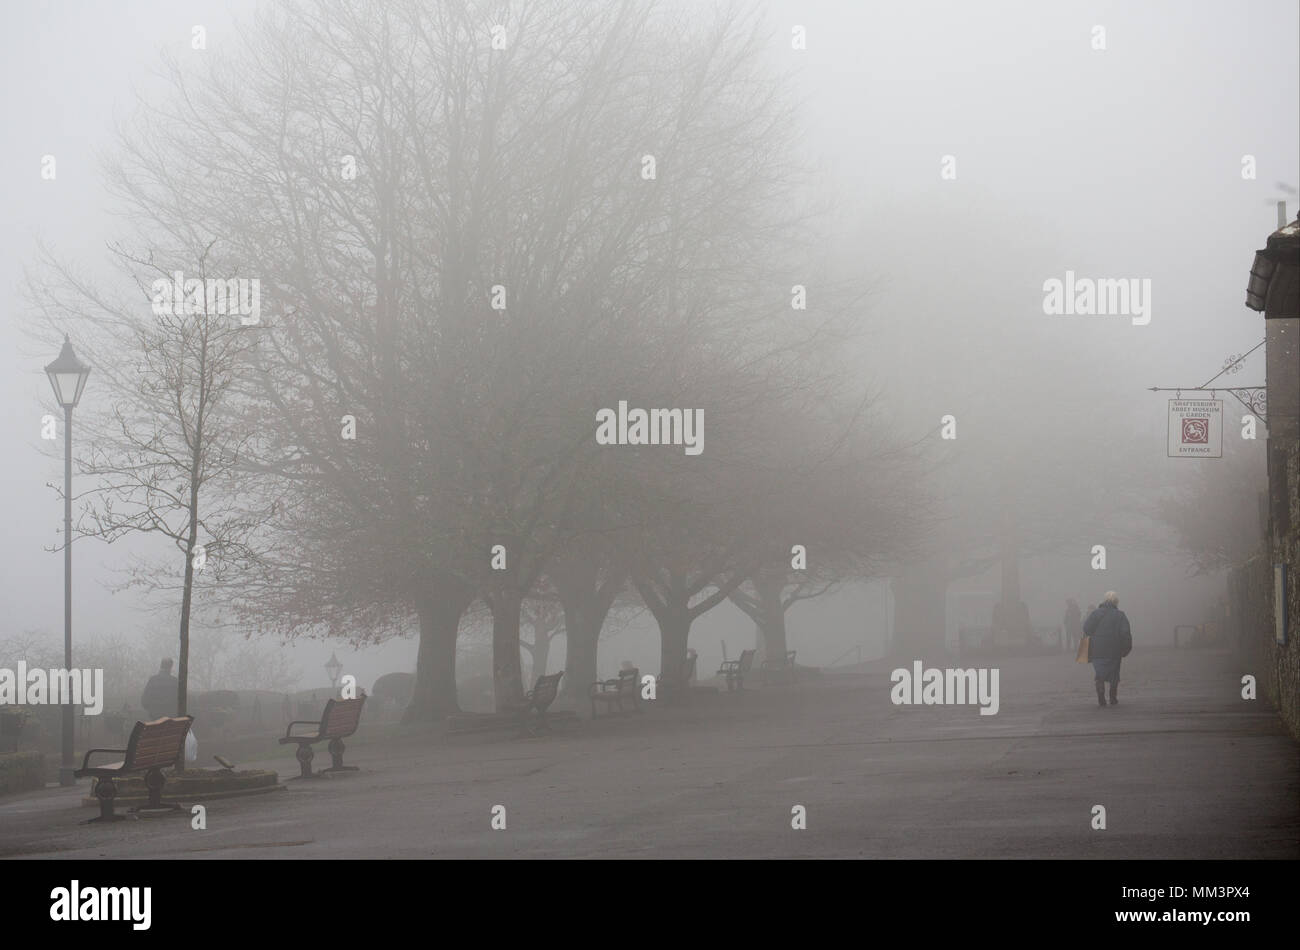 Park Walk Shaftesbury Dorset England UK on a foggy day in February 2018. In clear weather it is noted for its views over the countryside. Stock Photo